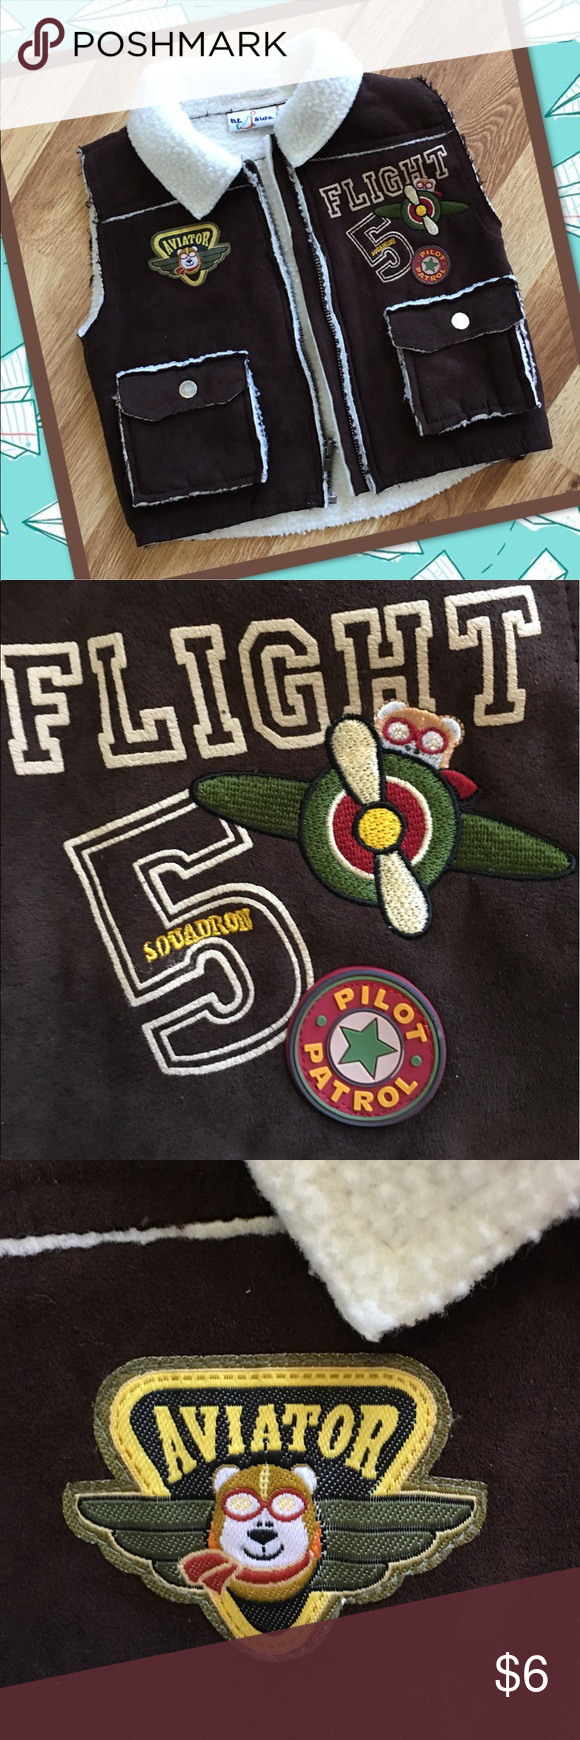 Fleece-lined Aviator Bomber Vest Fleece-lined with faux suede outside.  Covered in cute aviation themed patches. b.t kids Jackets & Coats Vests